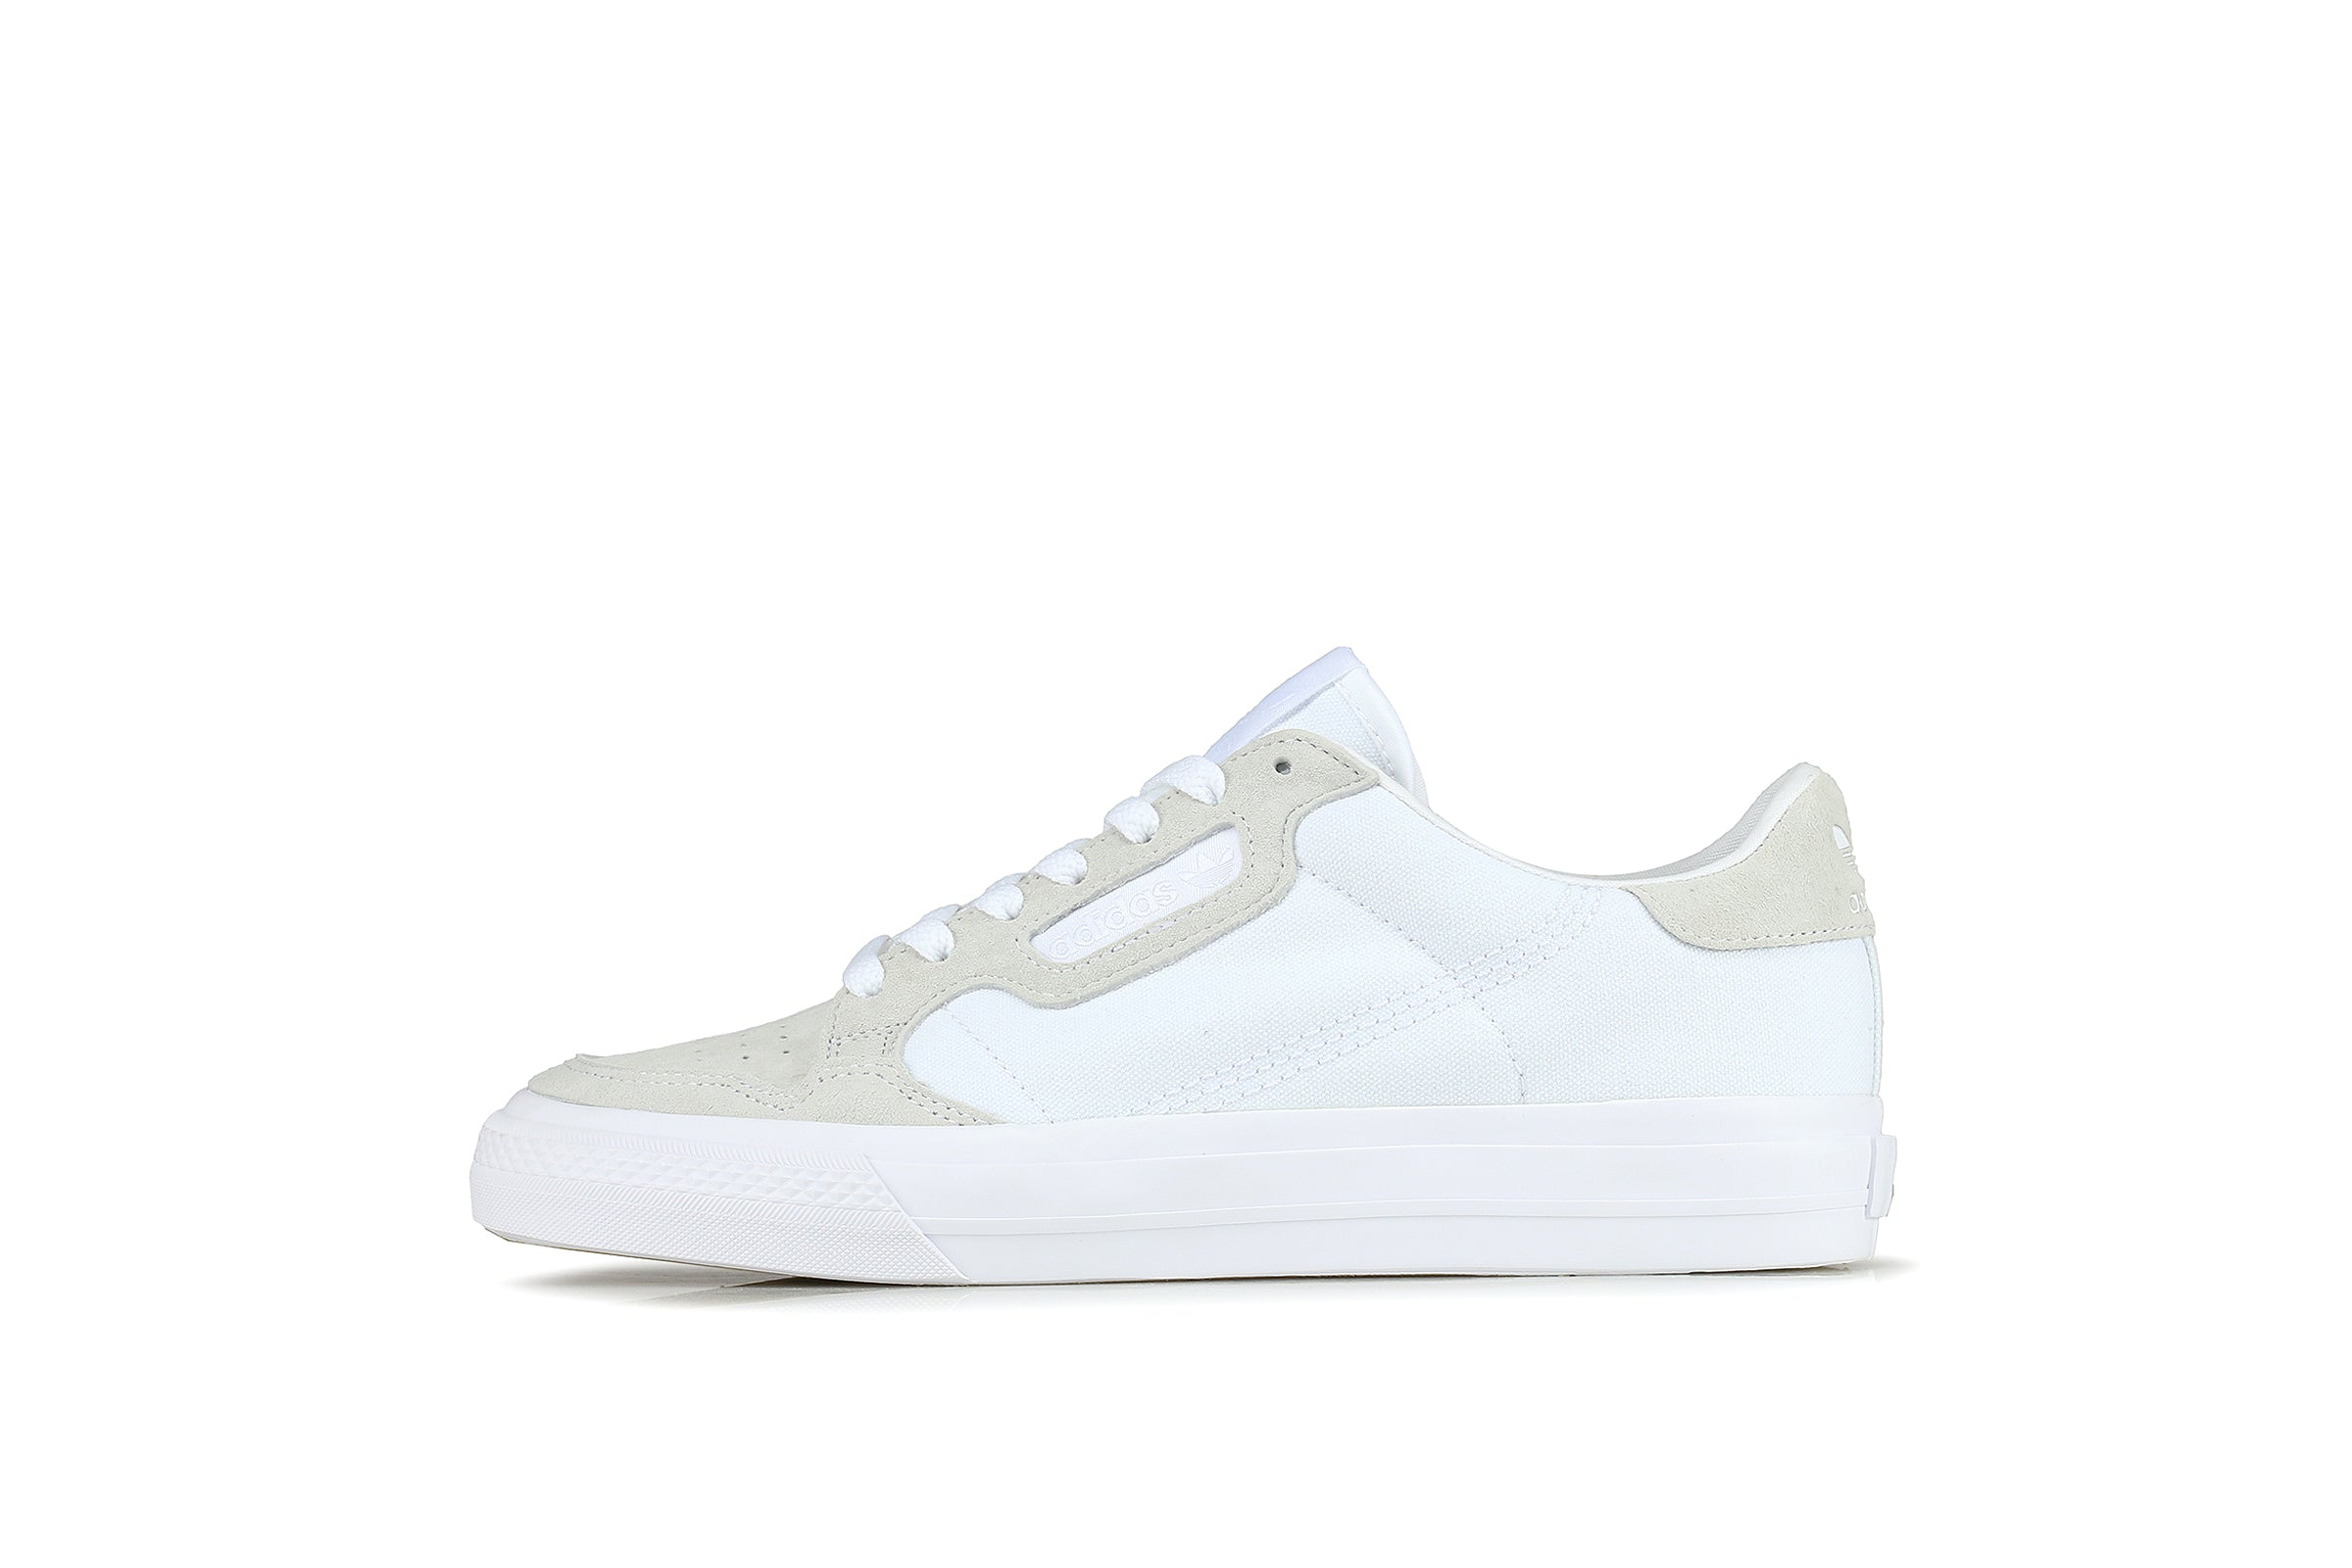 check out 3d4b0 73aad Adidas Continental Vulc